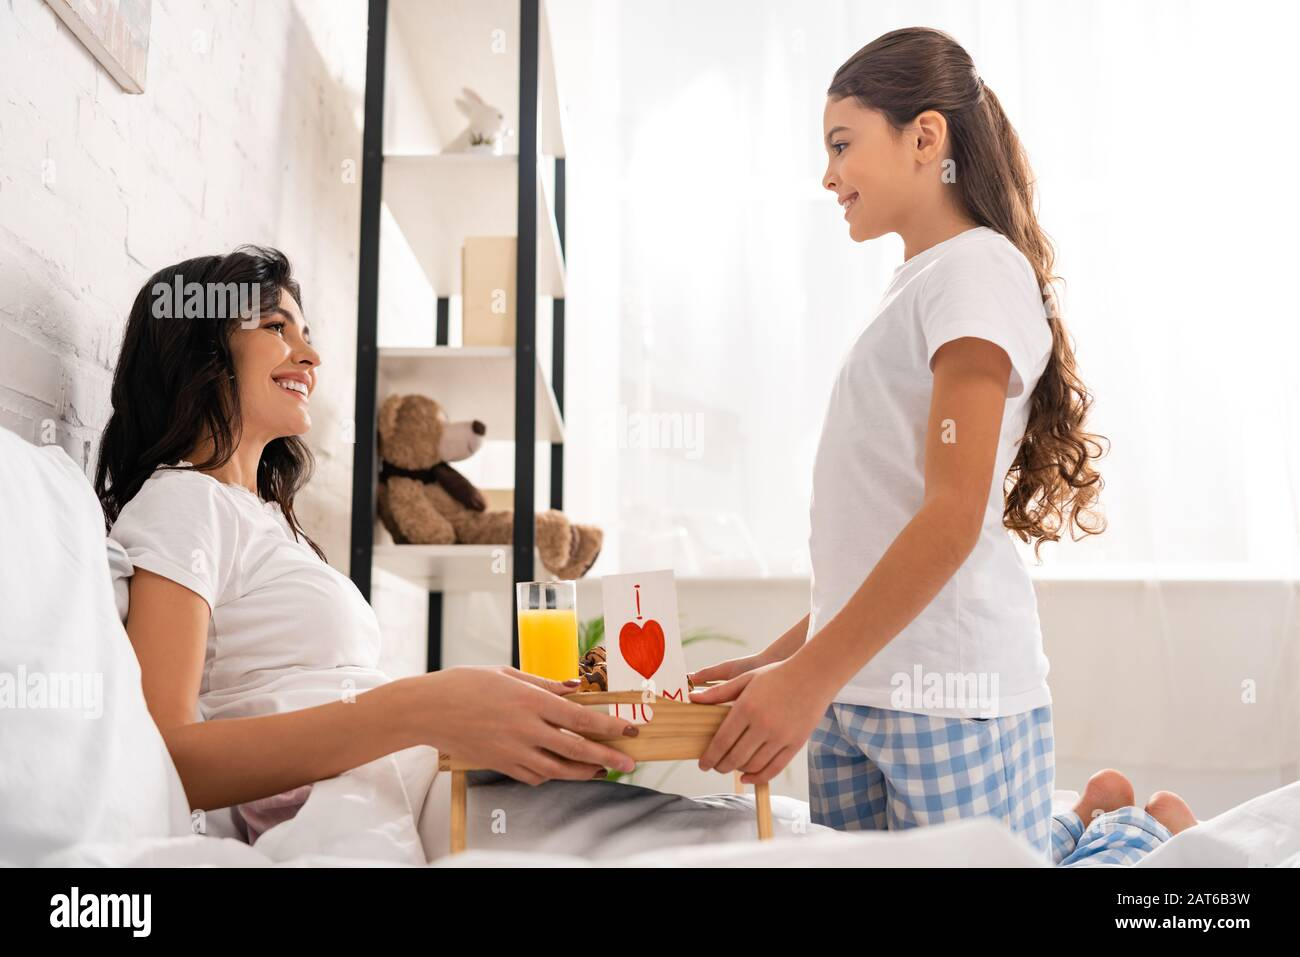 Cute Kid Giving Tray With Breakfast And Mothers Day Card With Heart Sign To Happy Mother Sitting In Bed Stock Photo Alamy